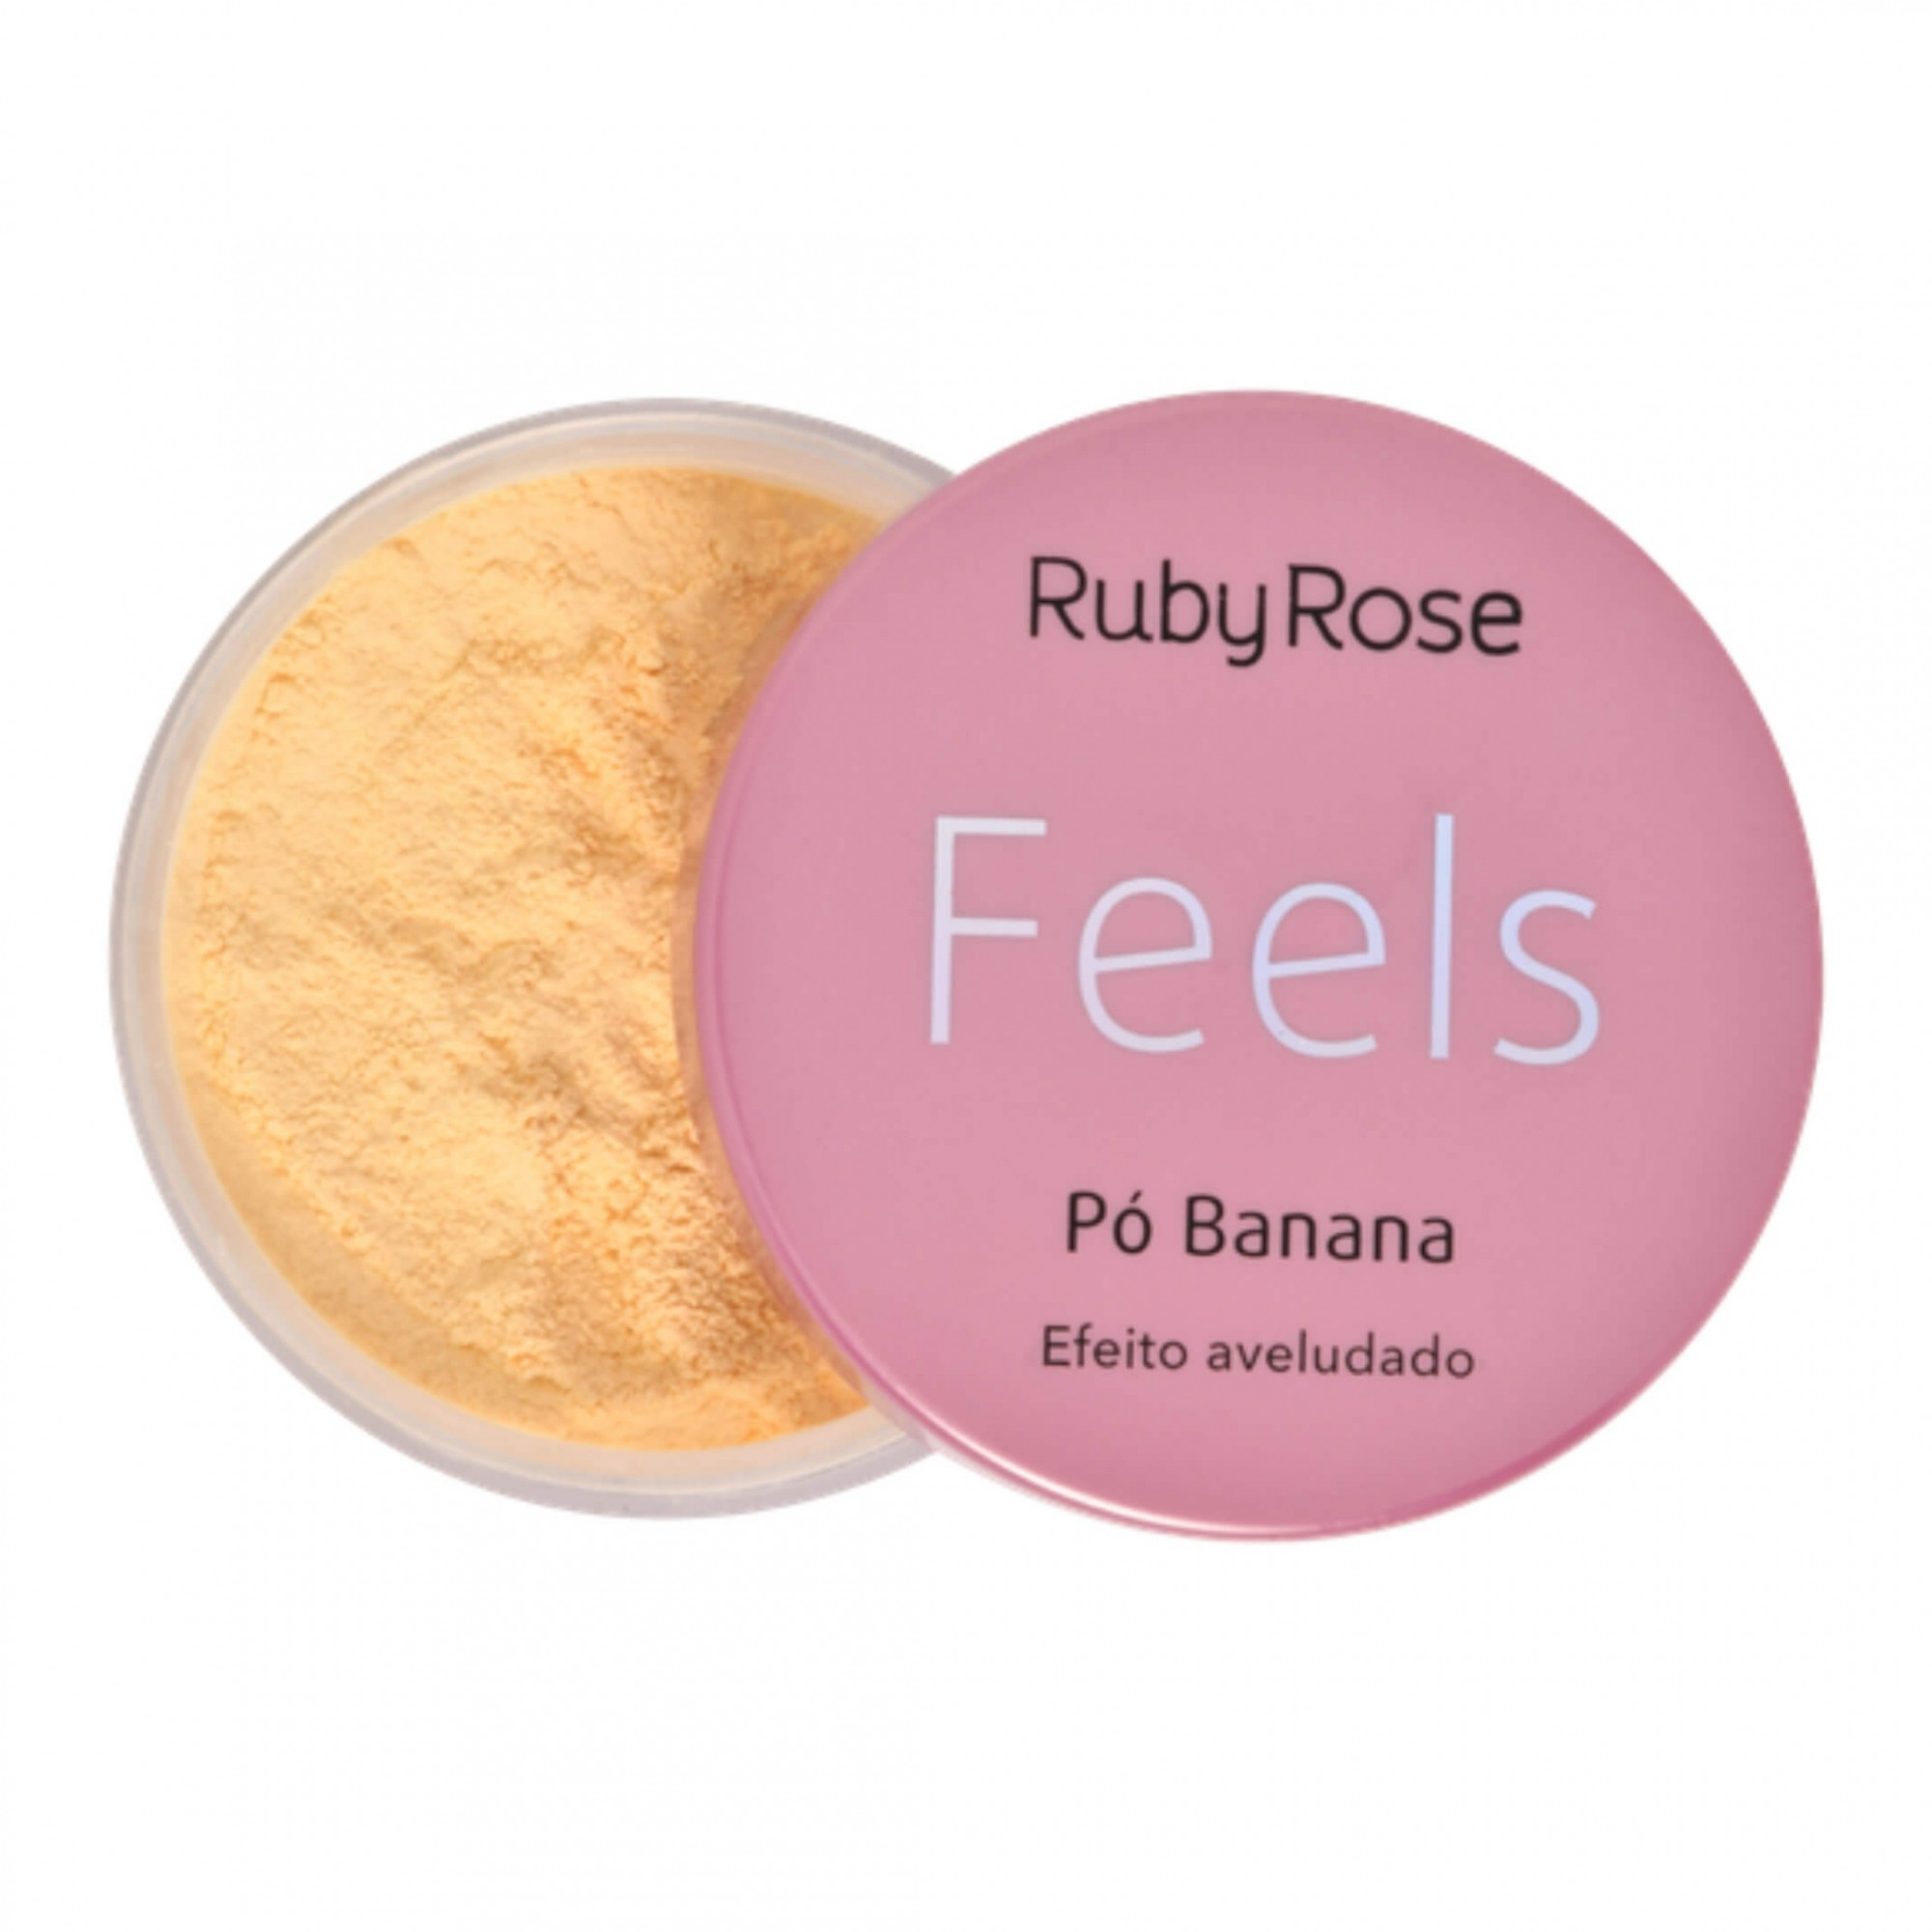 Pó Banana Feels Ruby Rose - 8,5g